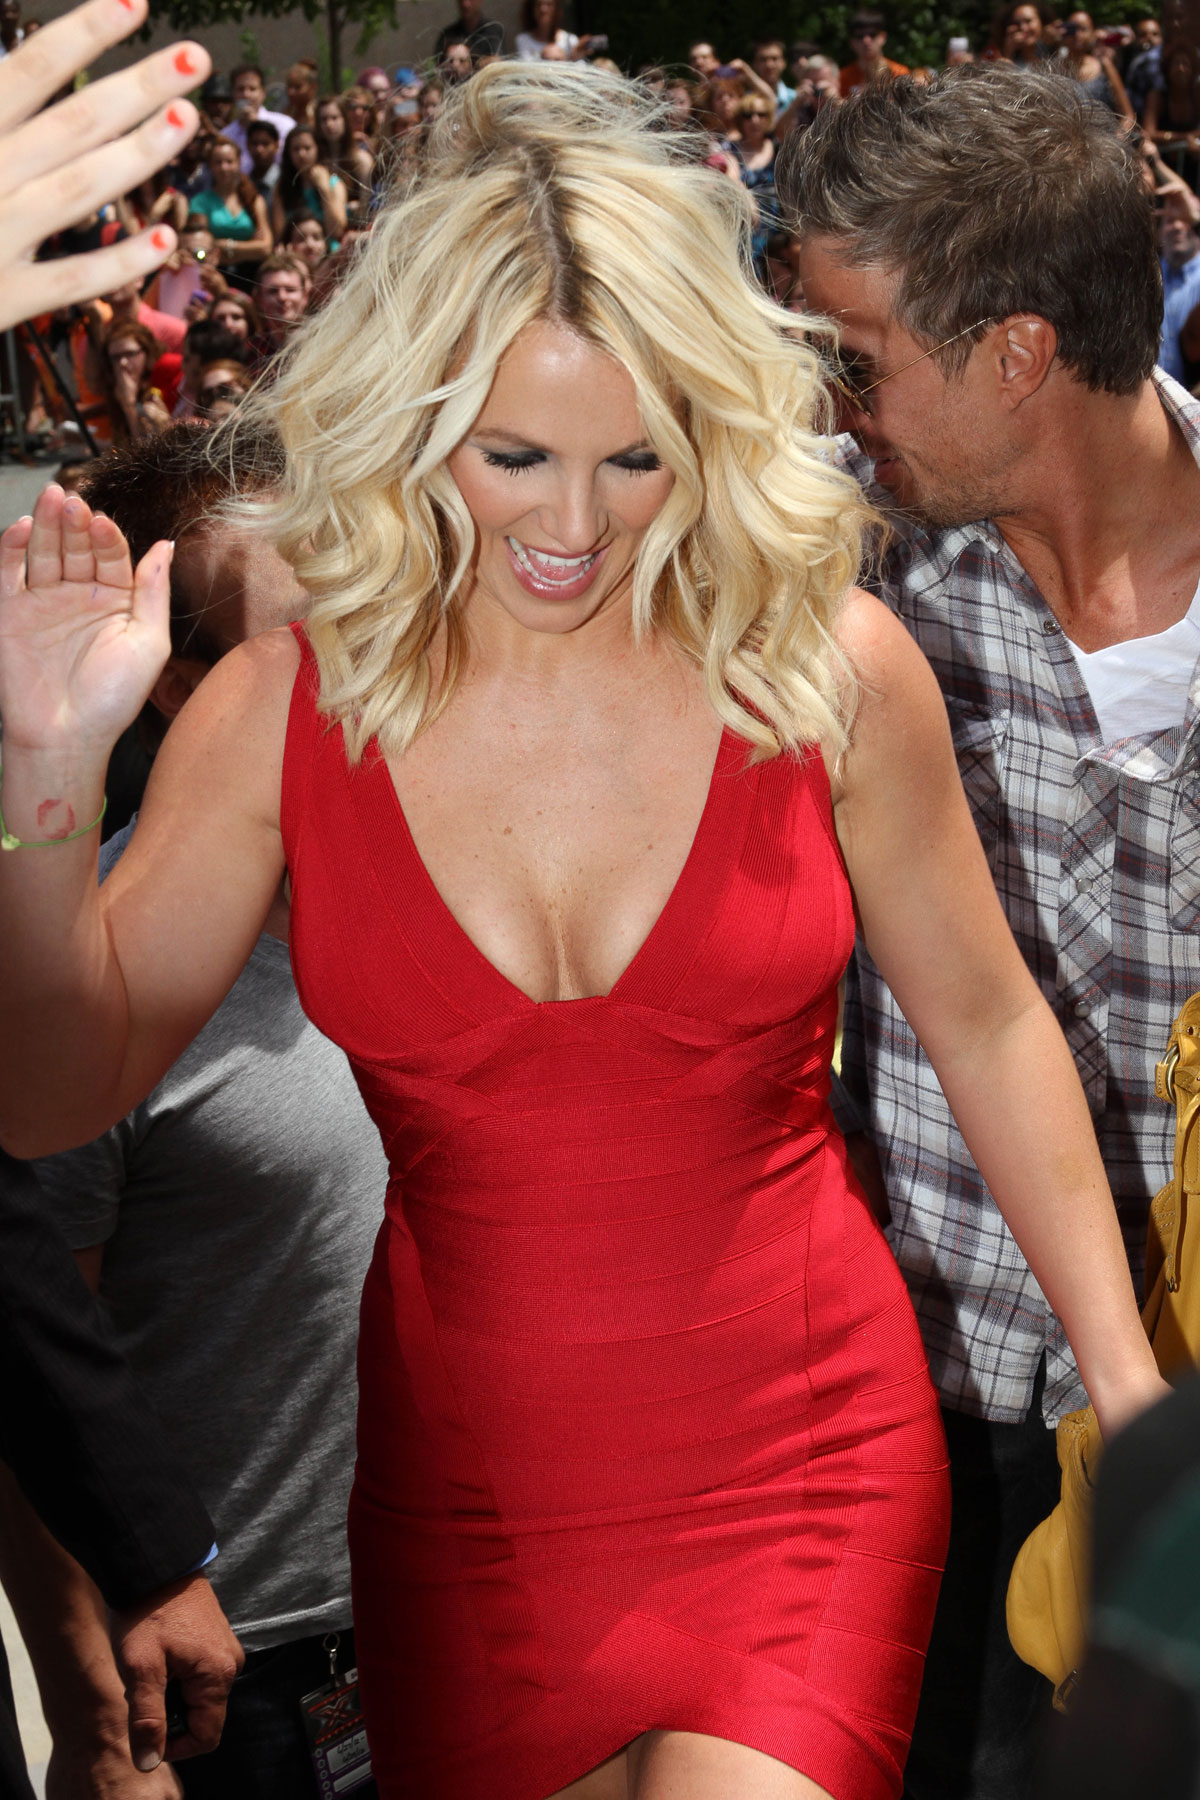 BRITNEY SPEARS at X Factor Auditions in Rhode Island